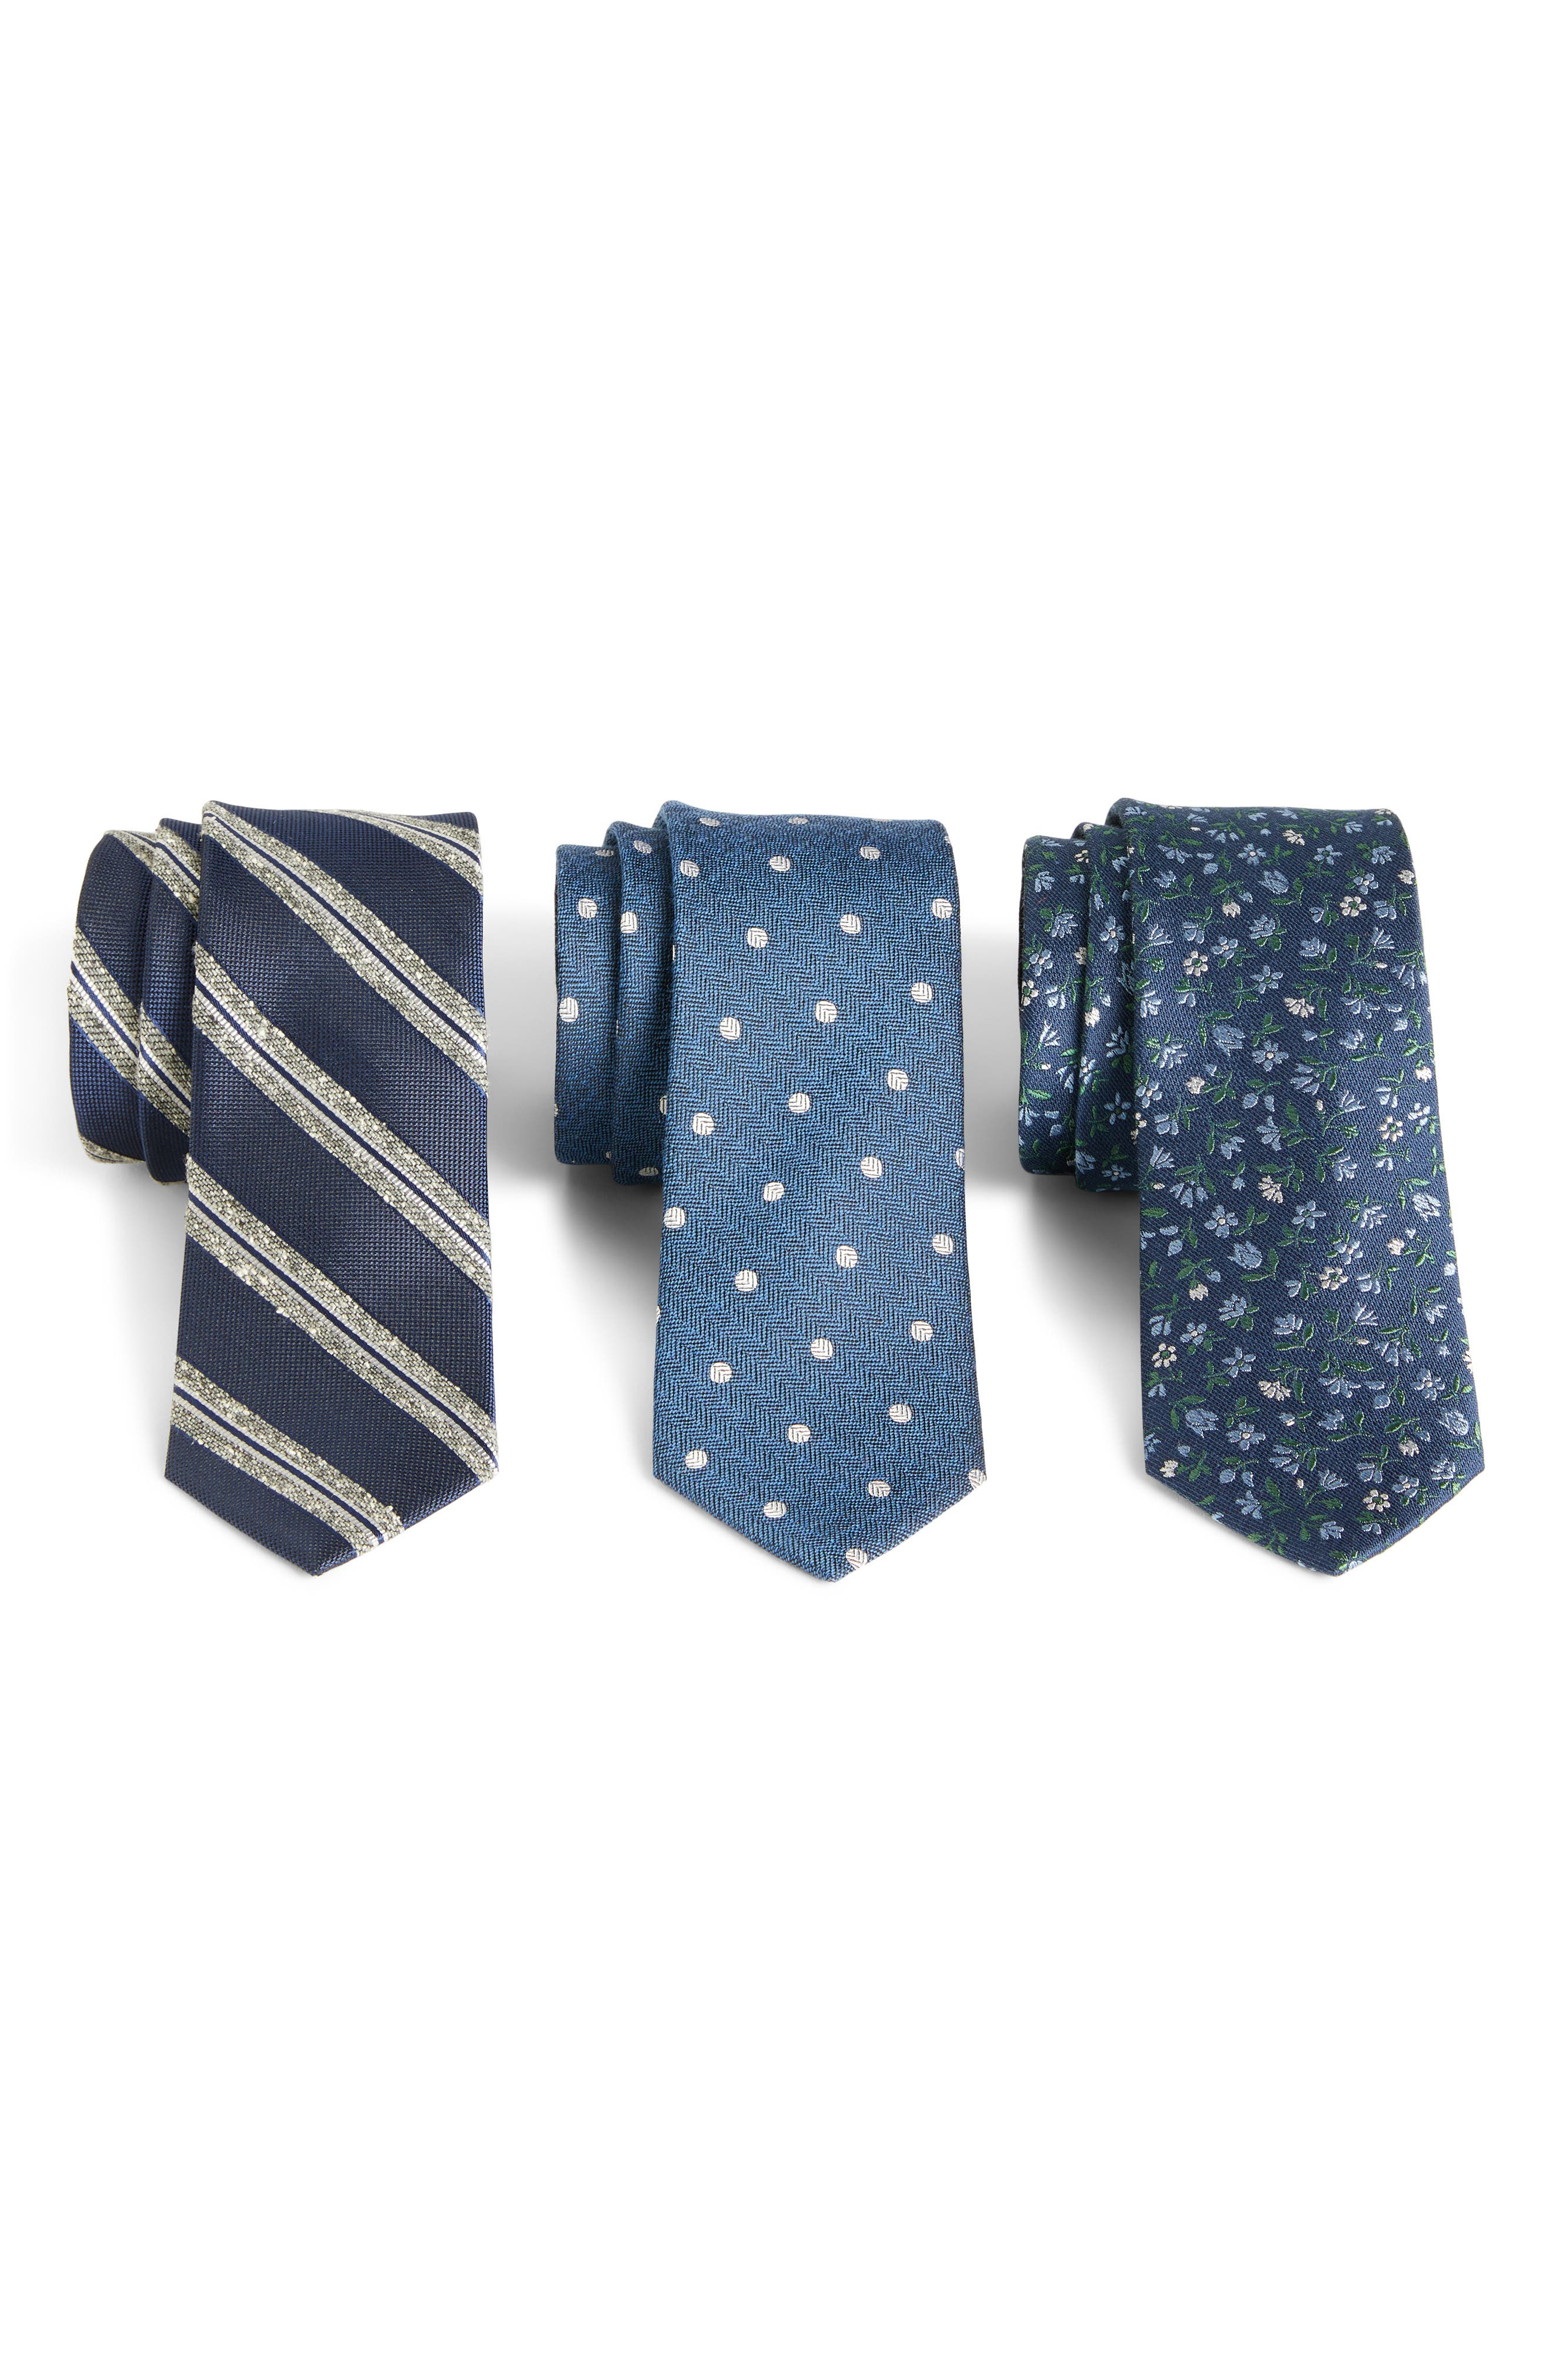 THE TIE BAR 3-Pack Navy Tie Gift Set, Main, color, NAVY